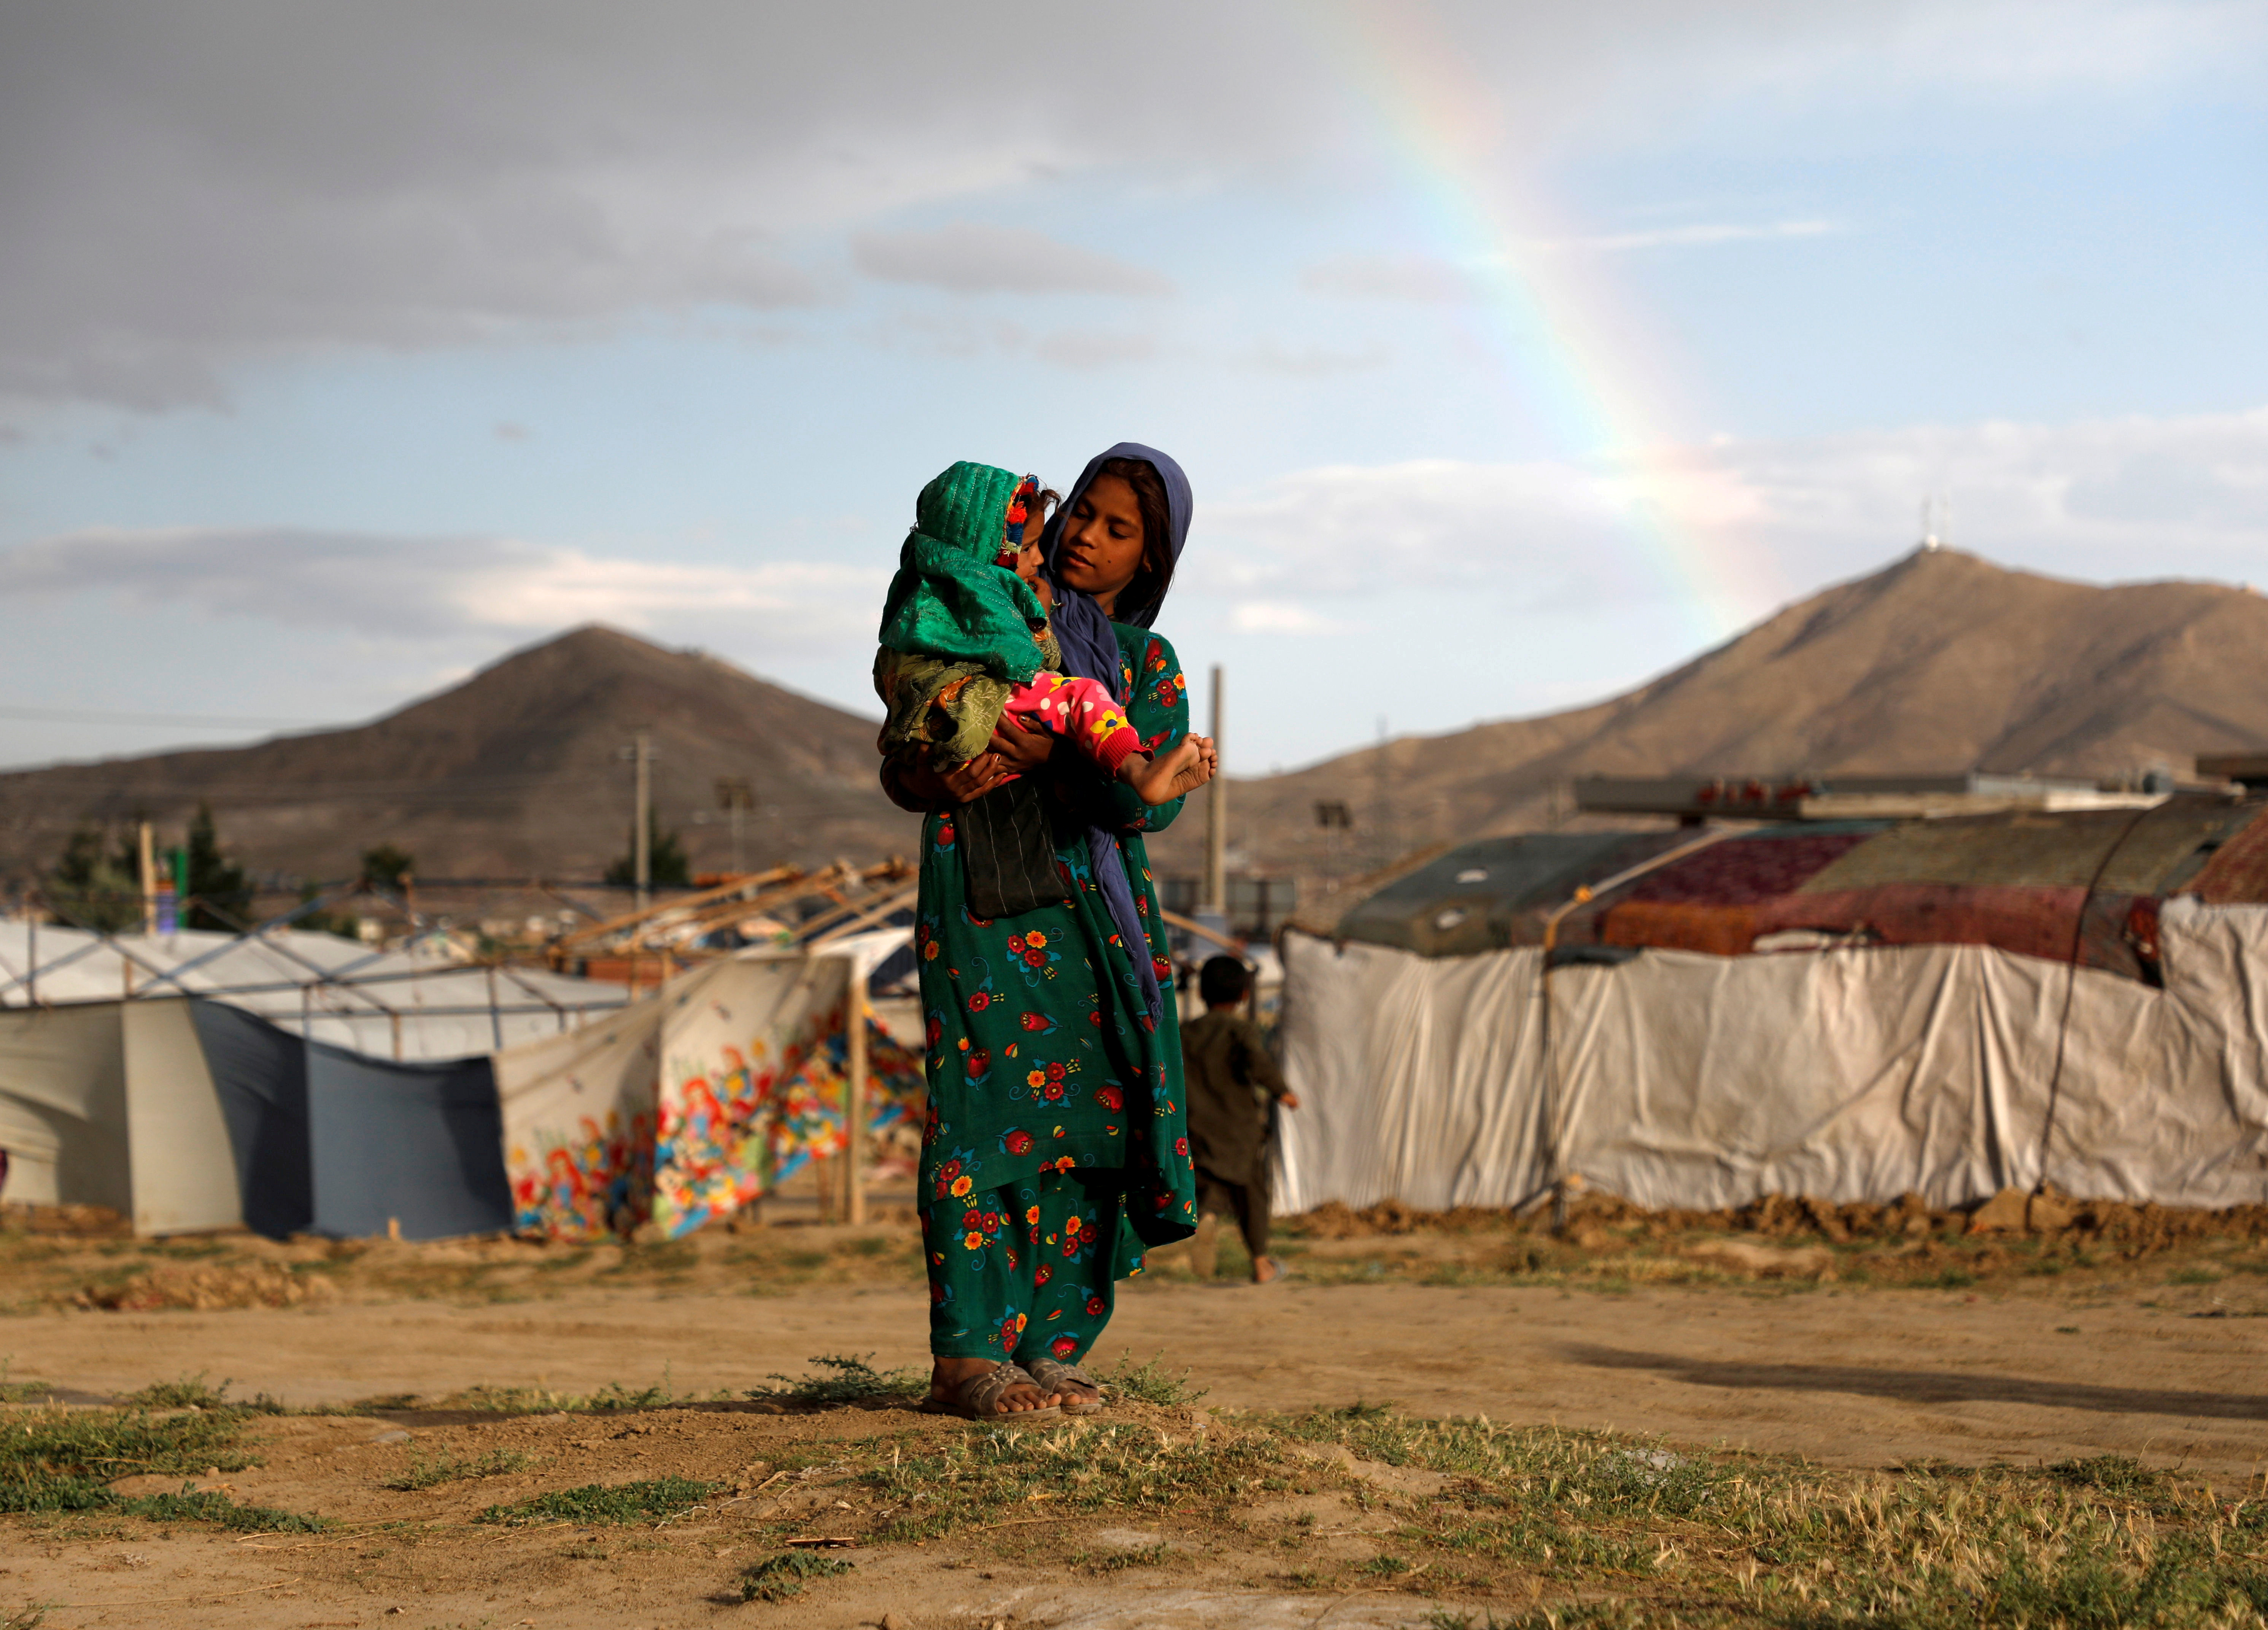 An internally displaced Afghan girl carries a child near their shelter at a camp on the outskirts of Kabul, Afghanistan June 20, 2019. REUTERS/Omar Sobhani